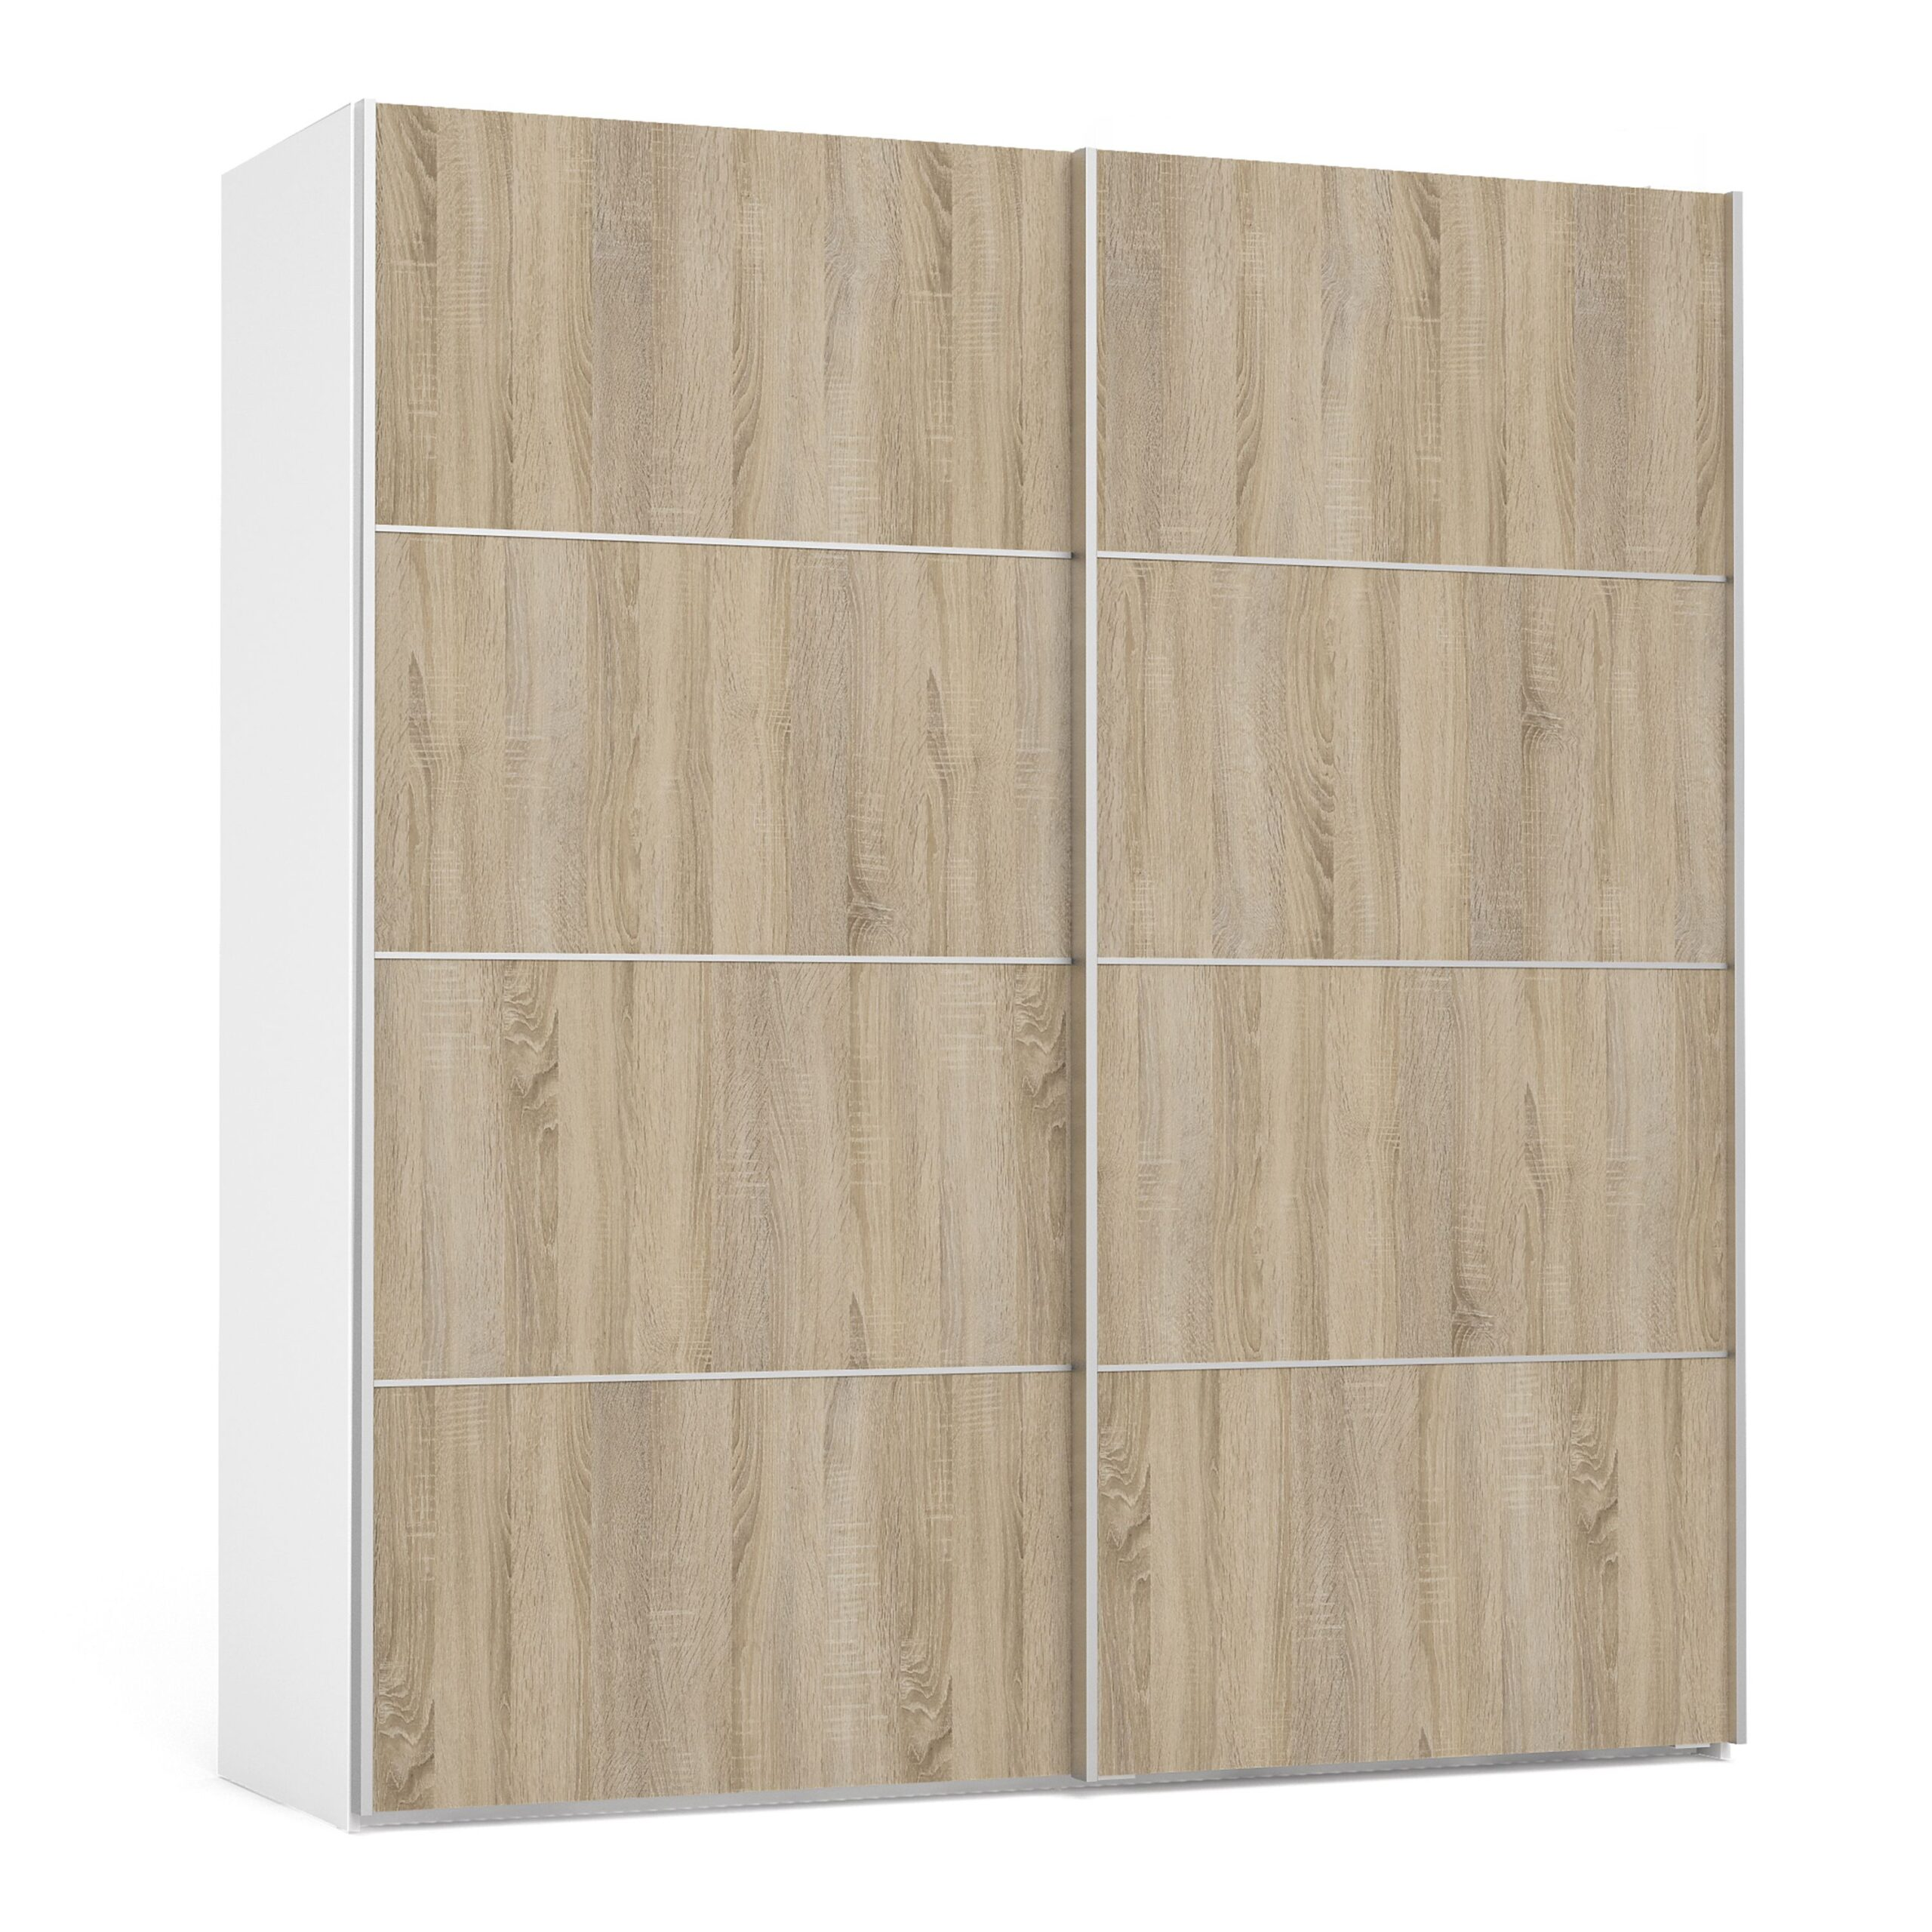 Phillipe Sliding Wardrobe 180cm in White with Oak Doors with 2 Shelves